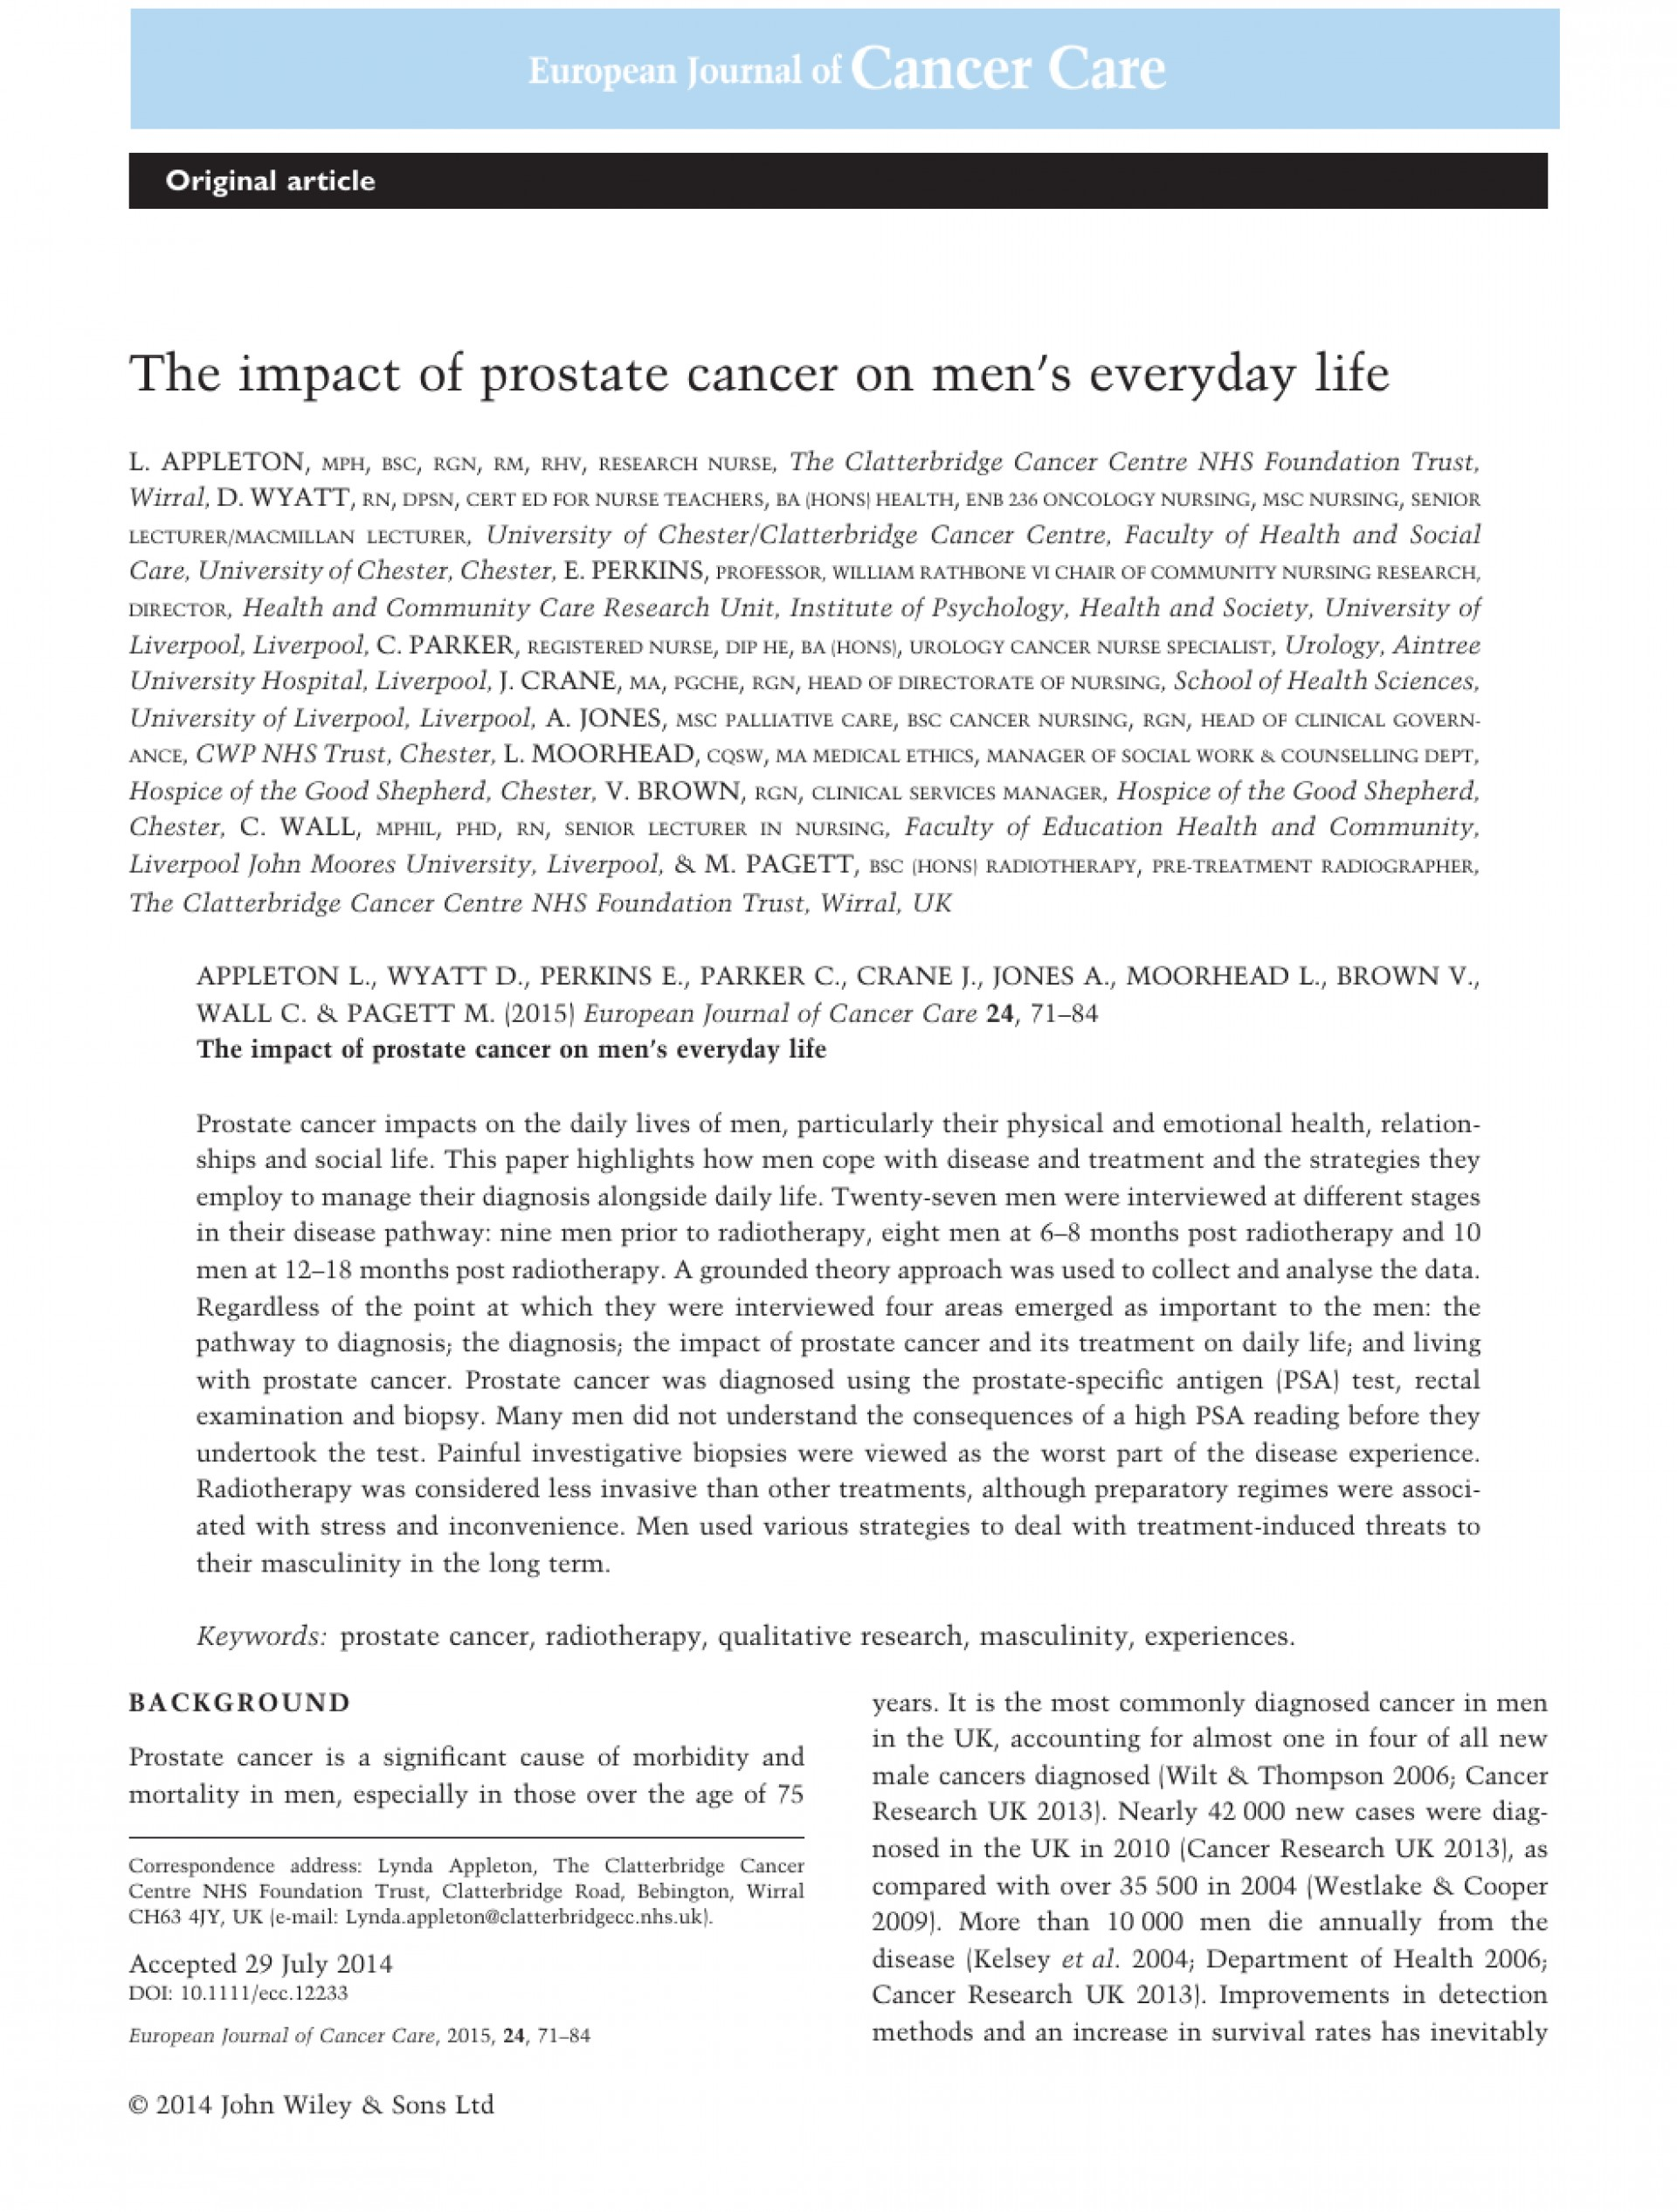 005 Cancer Research Paper Marvelous Topics Breast Ideas Ovarian 1920